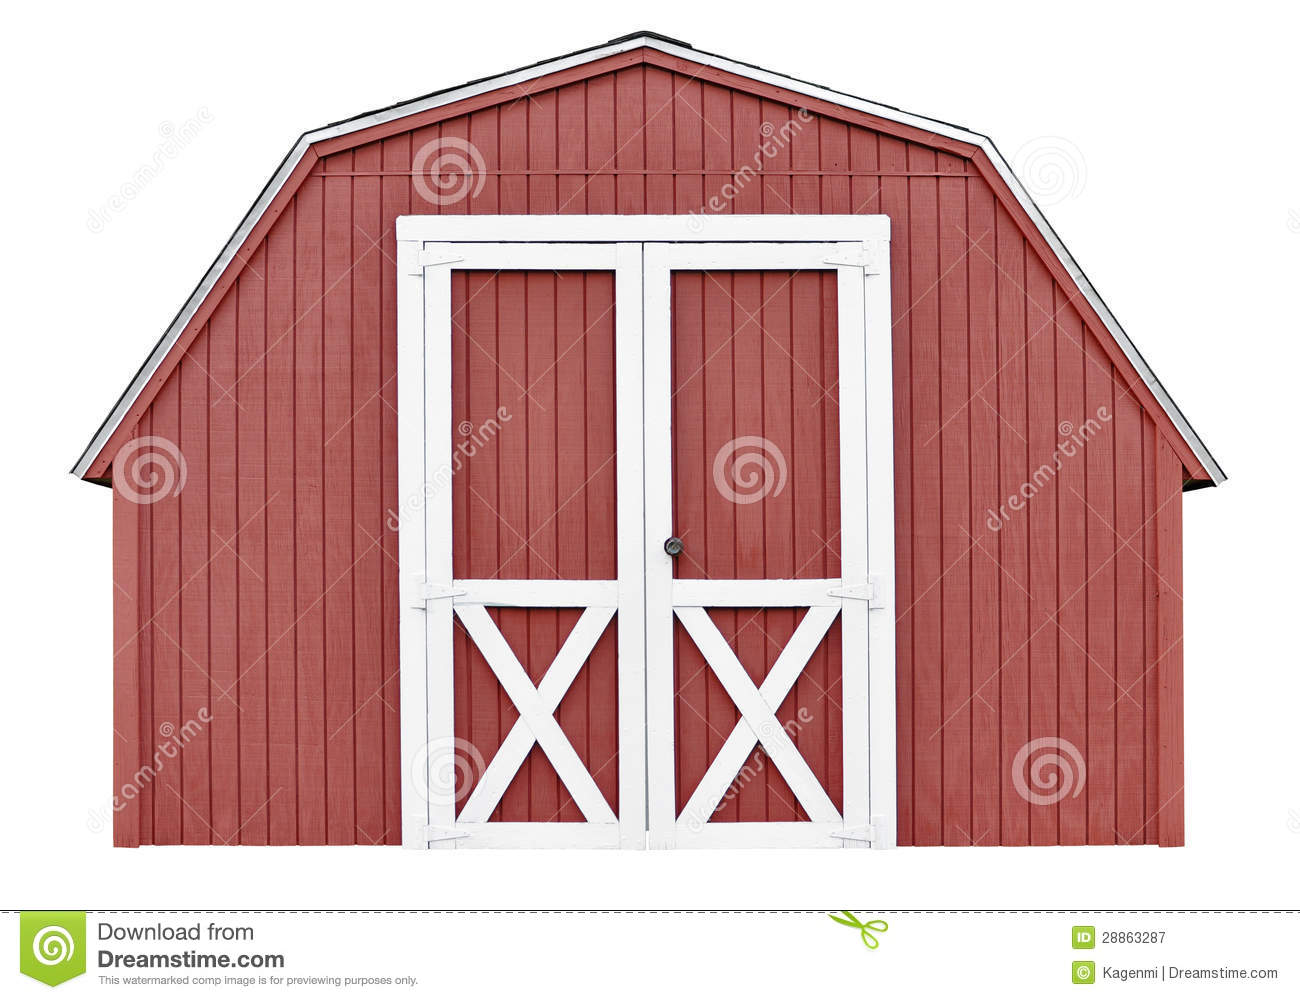 Dalama free baby barn shed plans for Farm shed plans